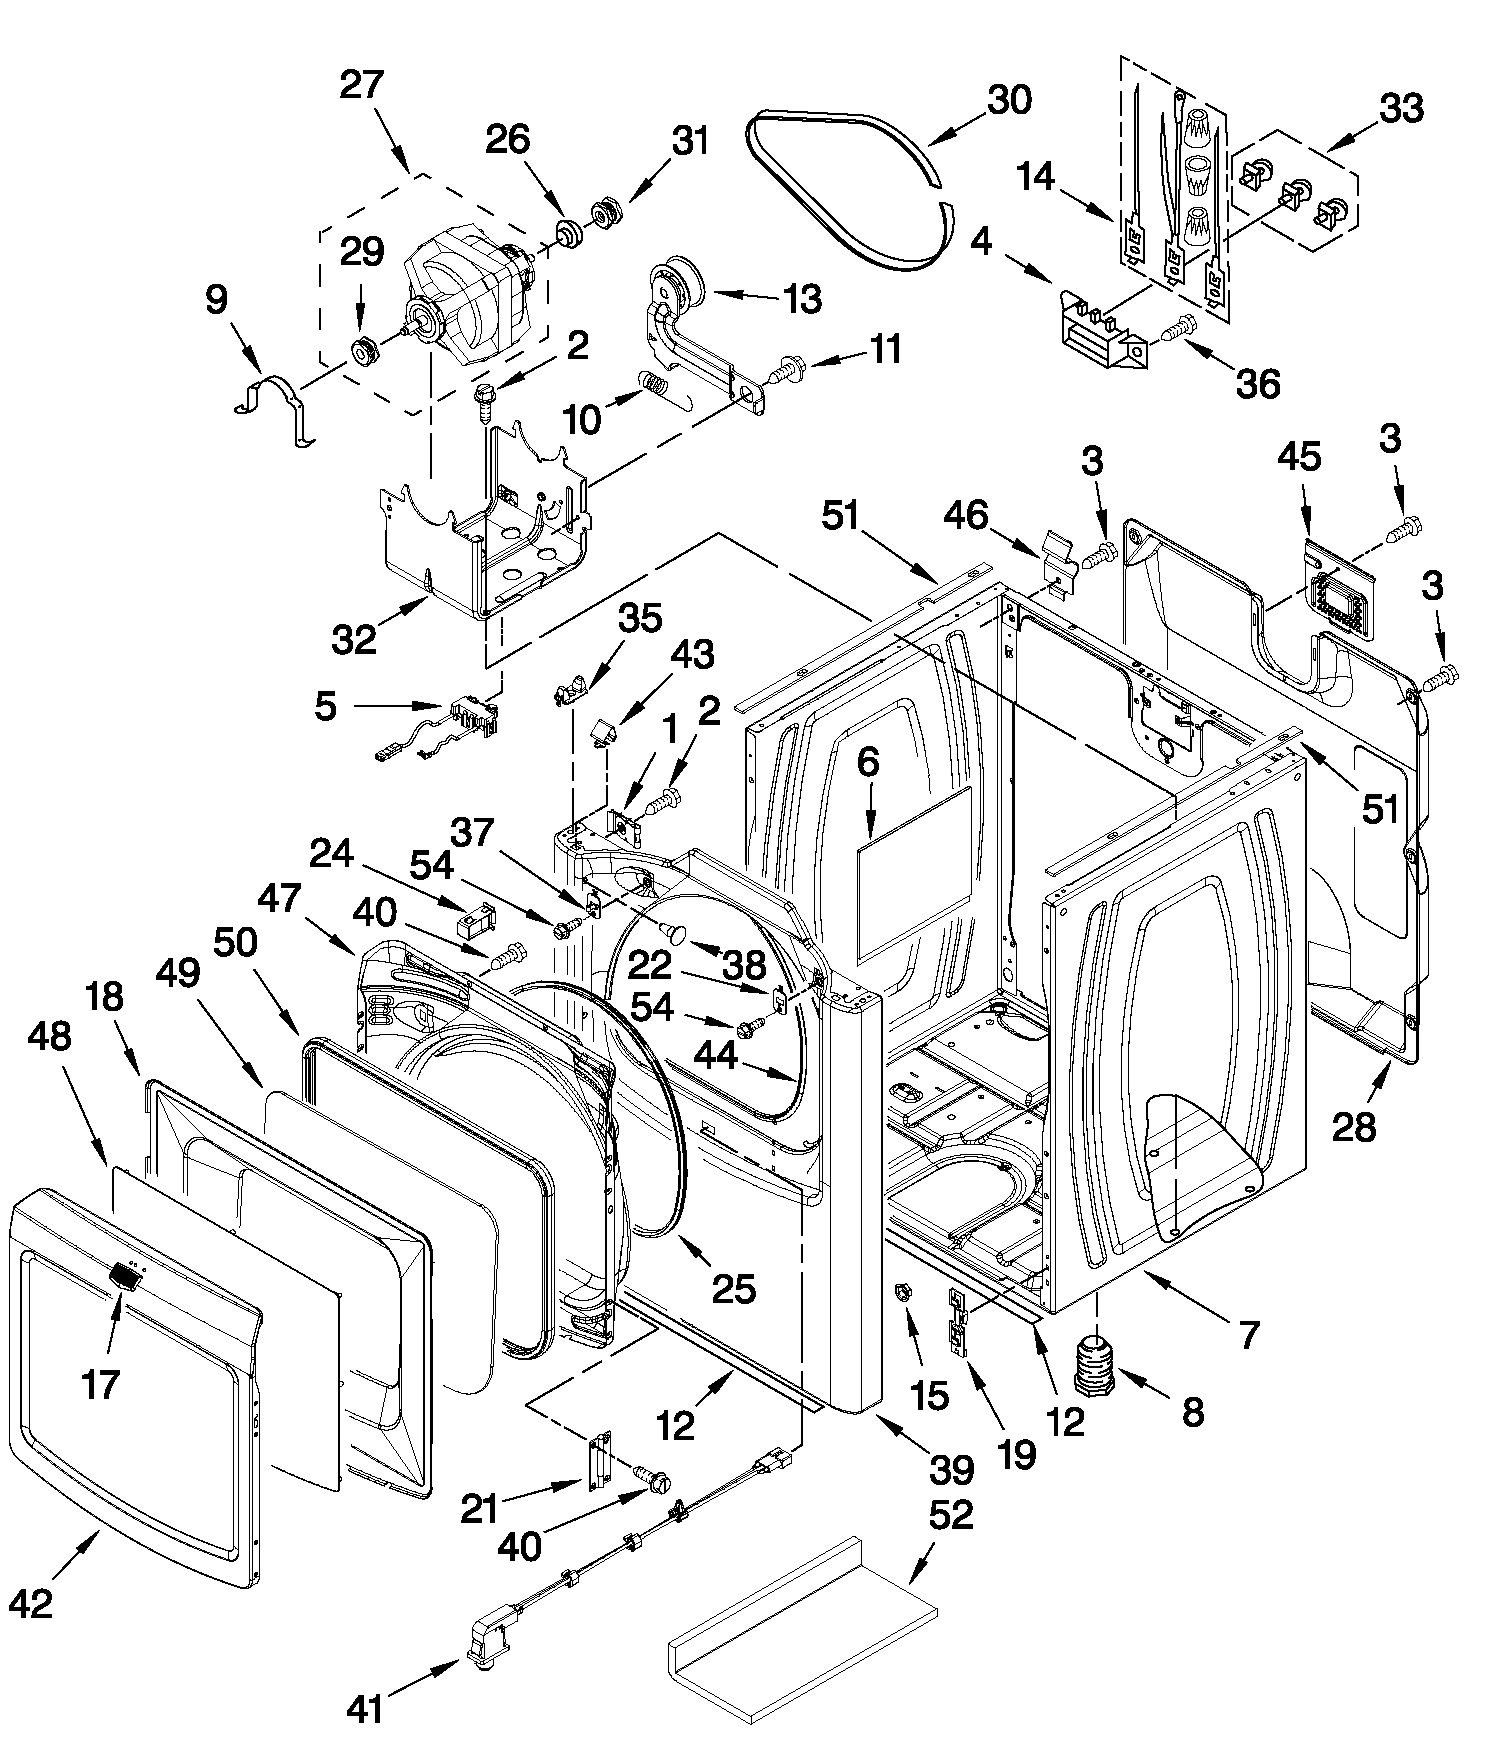 Wiring Diagram For Maytag Centennial Dryer